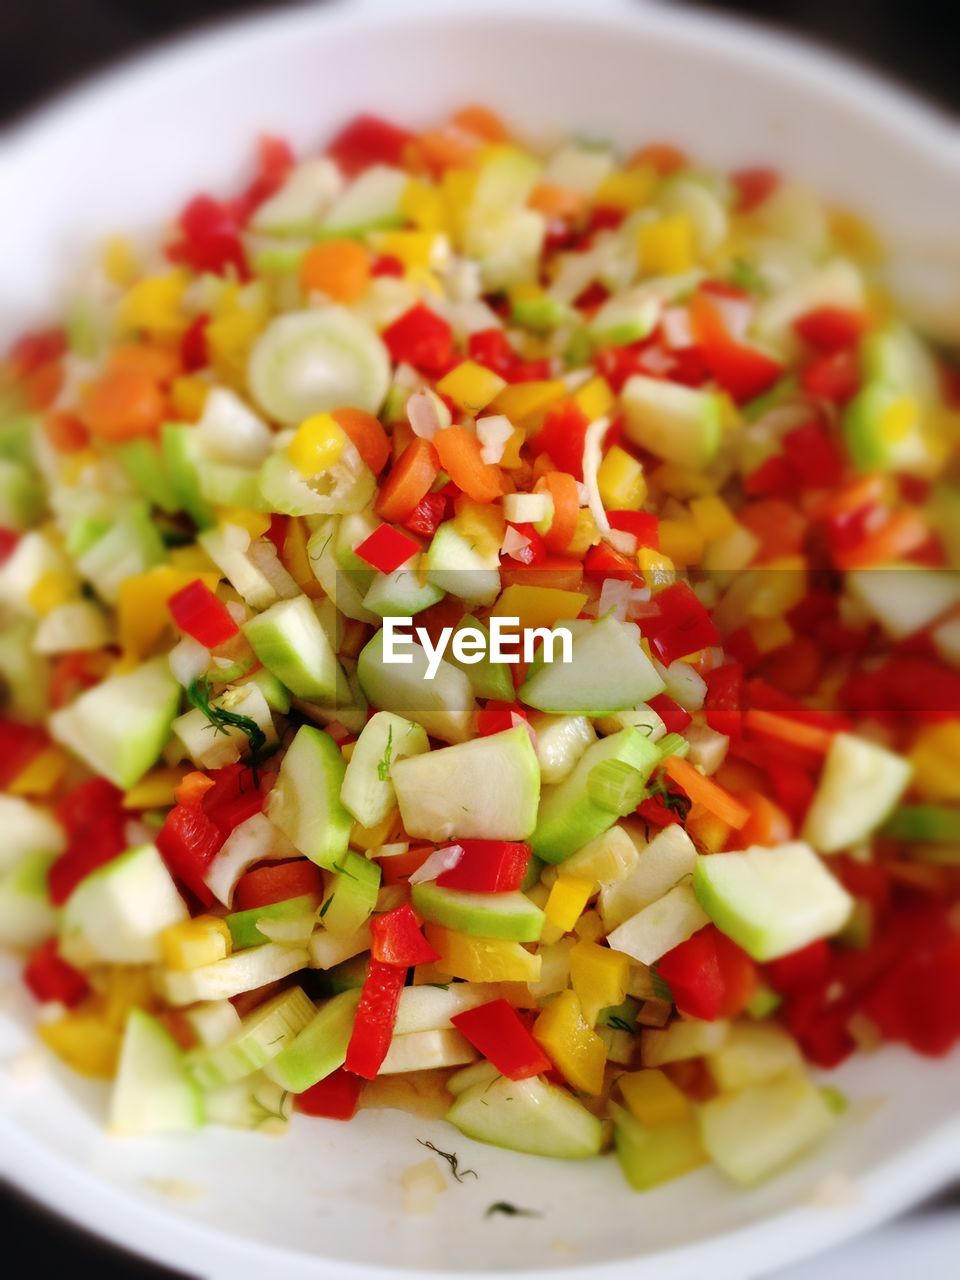 food and drink, food, healthy eating, salad, freshness, vegetable, bowl, chopped, tomato, red, vegetarian food, no people, indoors, close-up, ready-to-eat, day